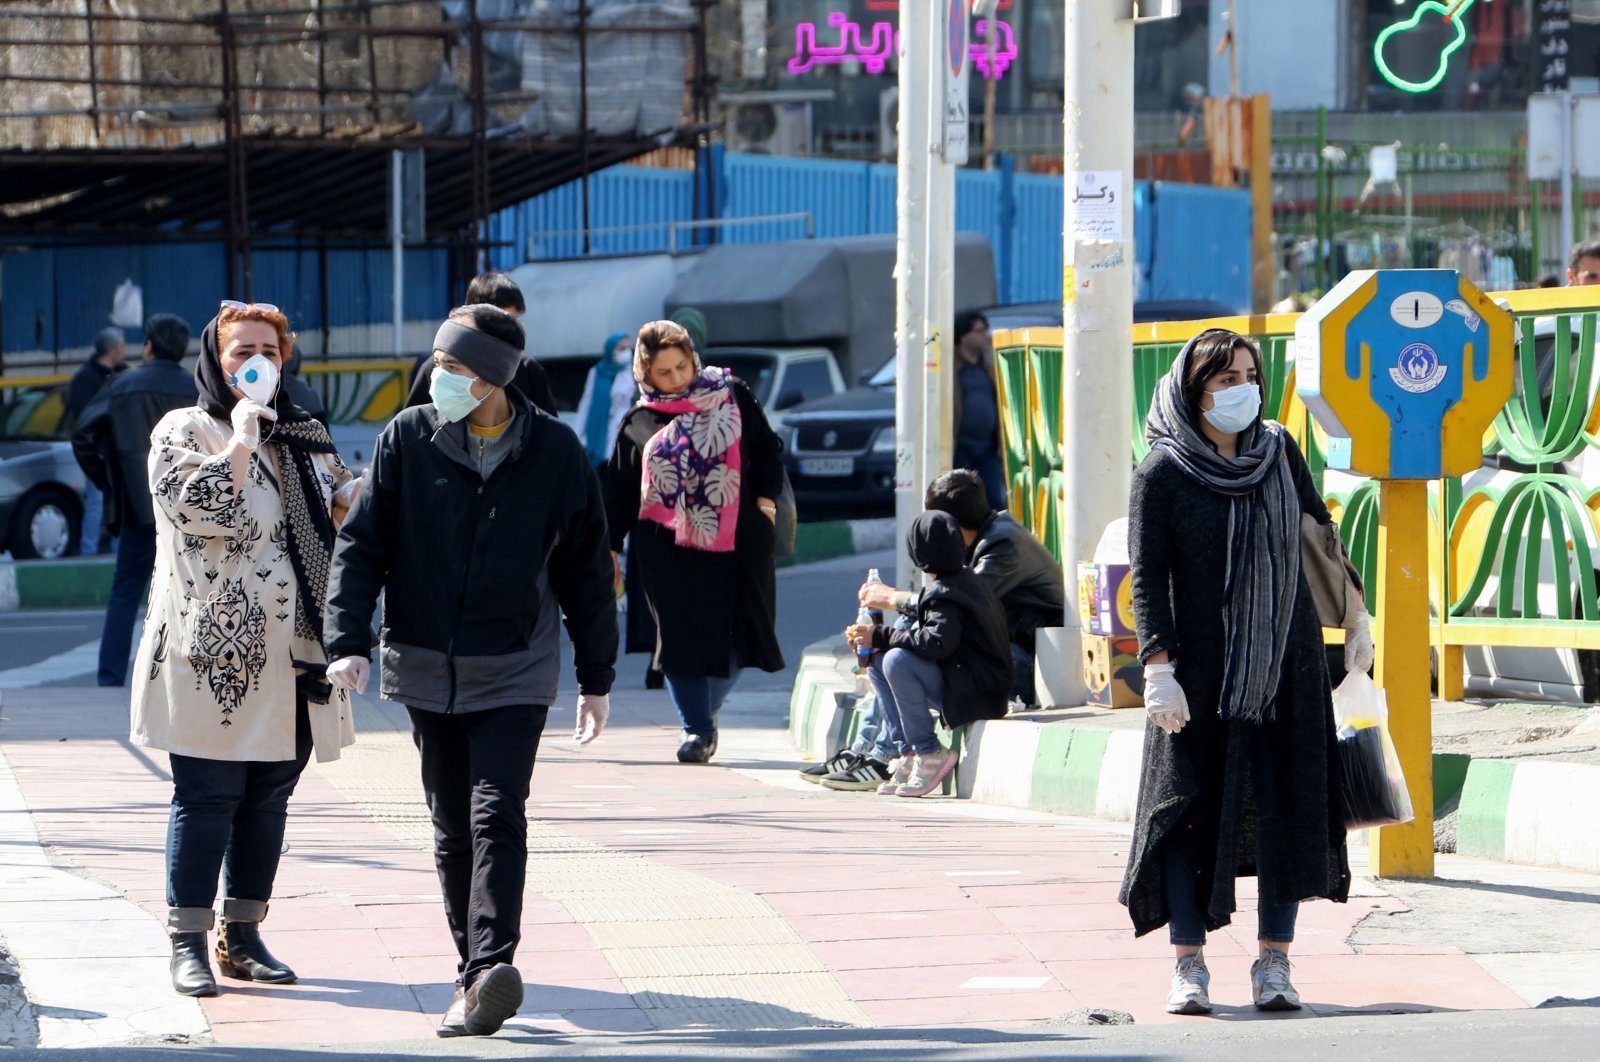 Iranian pedestrians walk while wearing protective masks in Tehran on March 10, 2020 amid the spread of coronavirus in the country. (AFP Photo)